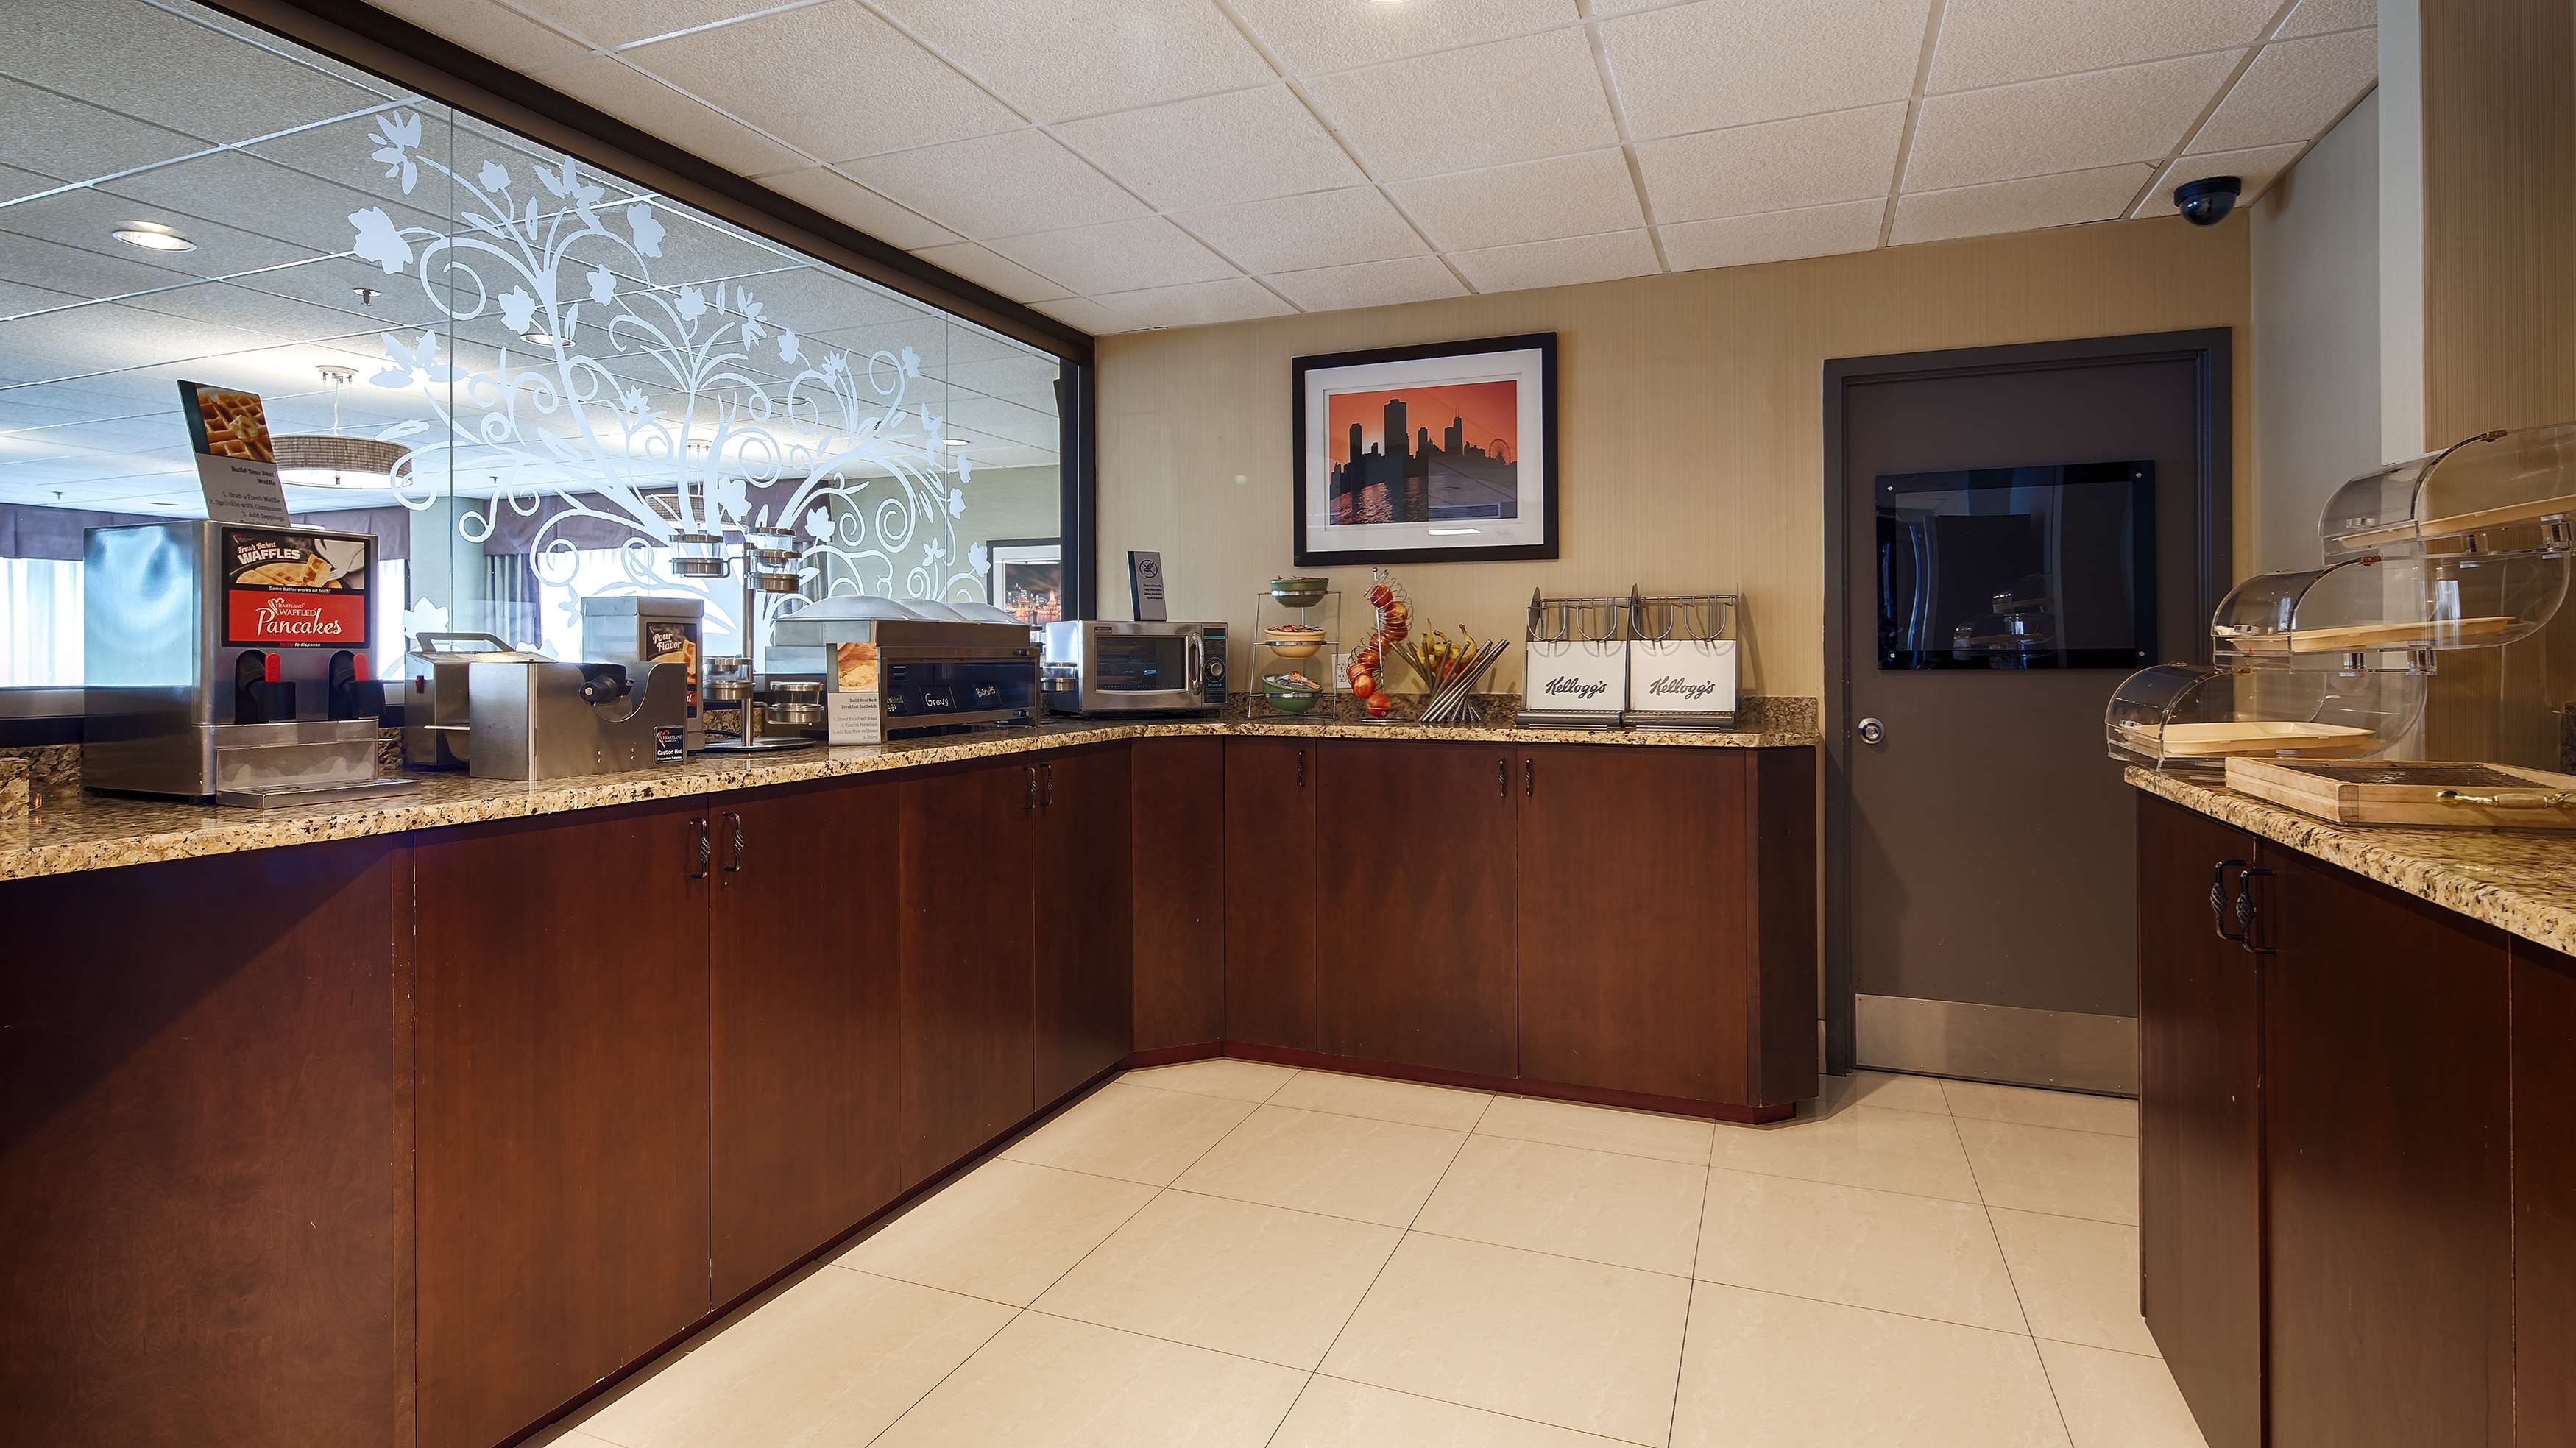 Best Western O 39 Hare North Elk Grove Hotel In Elk Grove Village Il 60007